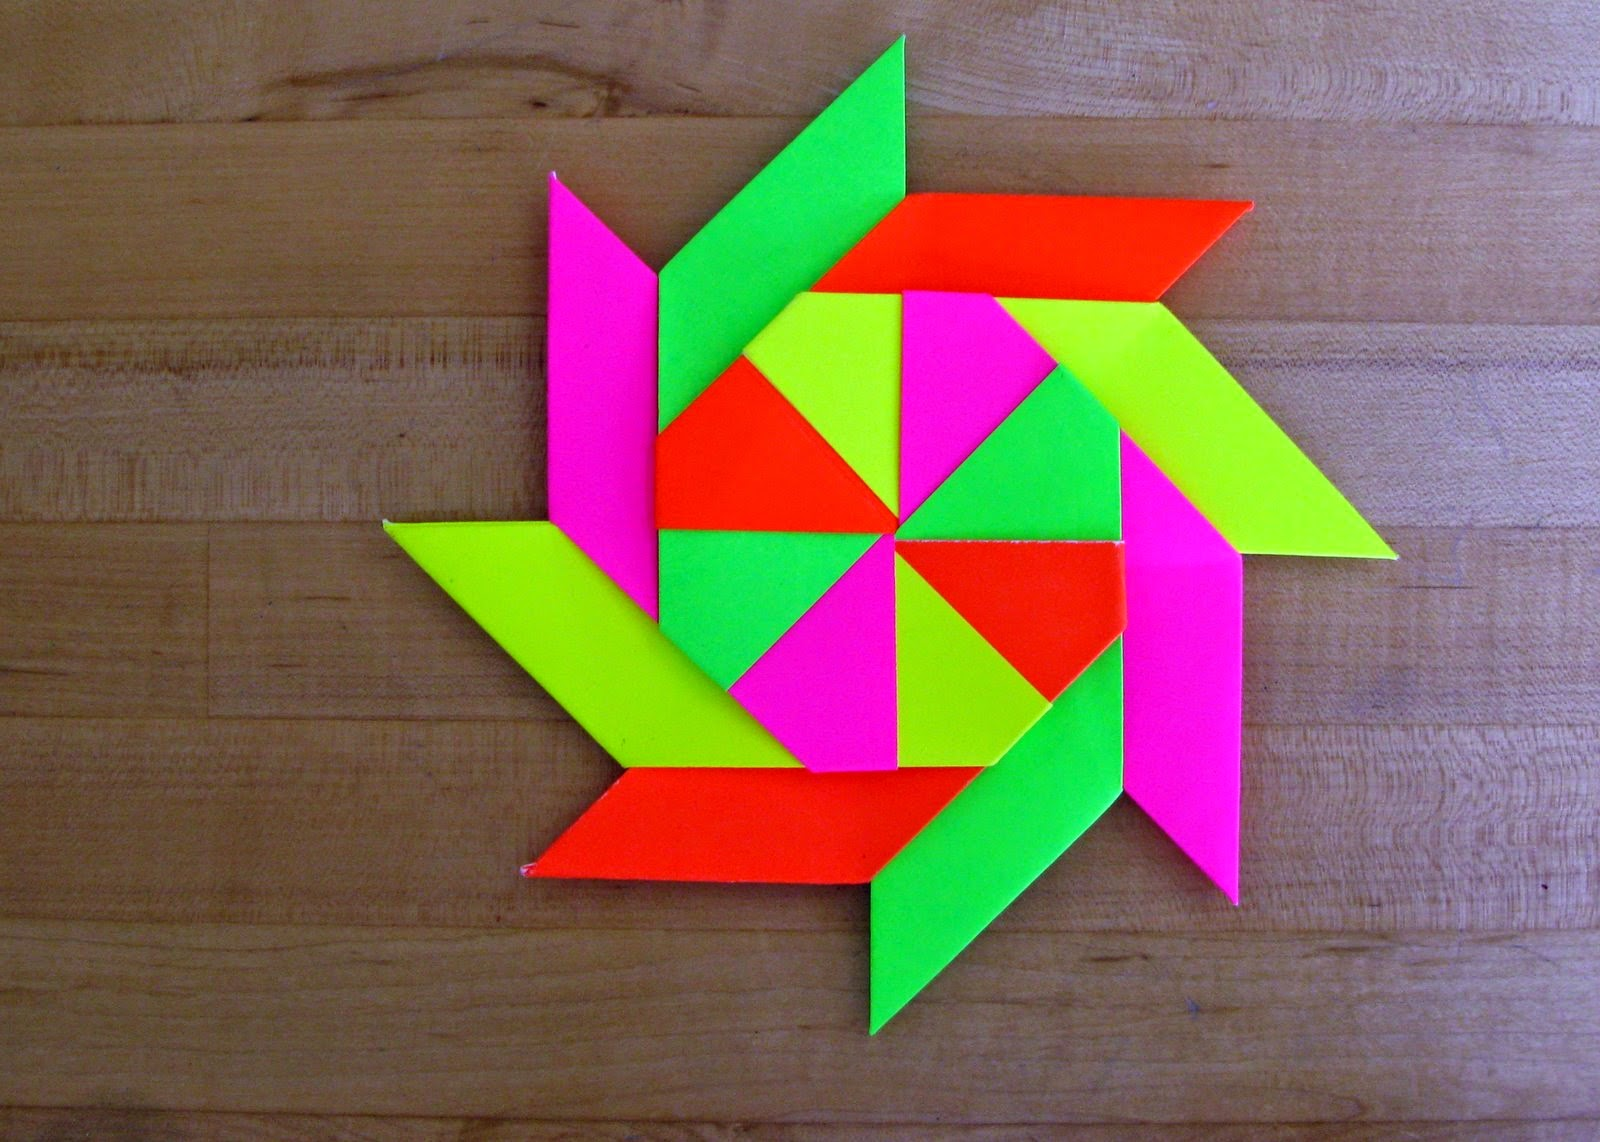 Origami instructions com 8 pointed origami star - 8 Pointed Origami Throwing Star Simple Origami For Kids